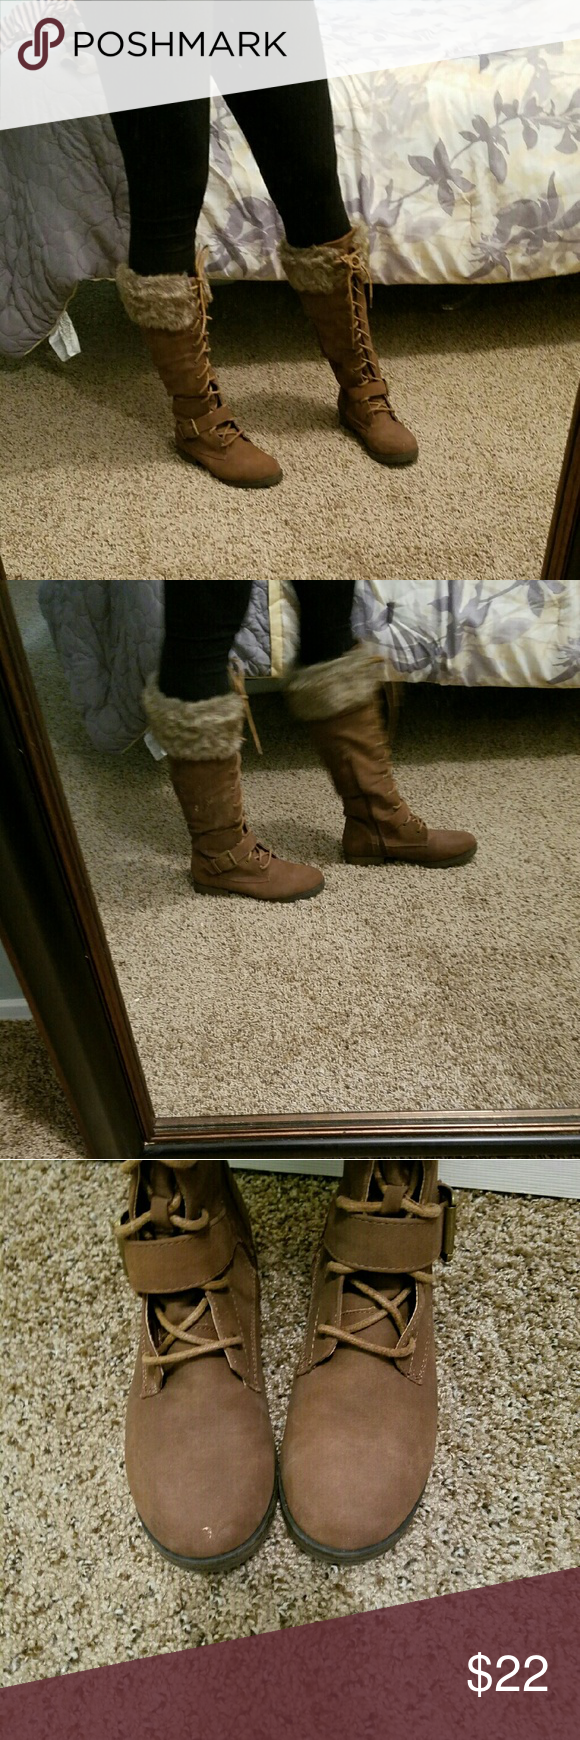 Soft brown lace up boots These are so soft and very warm. There is a side zipper to put them on. They lace up and have fur trim that keeps you so warm during the winter months. Small scuff on the toe shown in the 3rd pic. JustFab Shoes Lace Up Boots